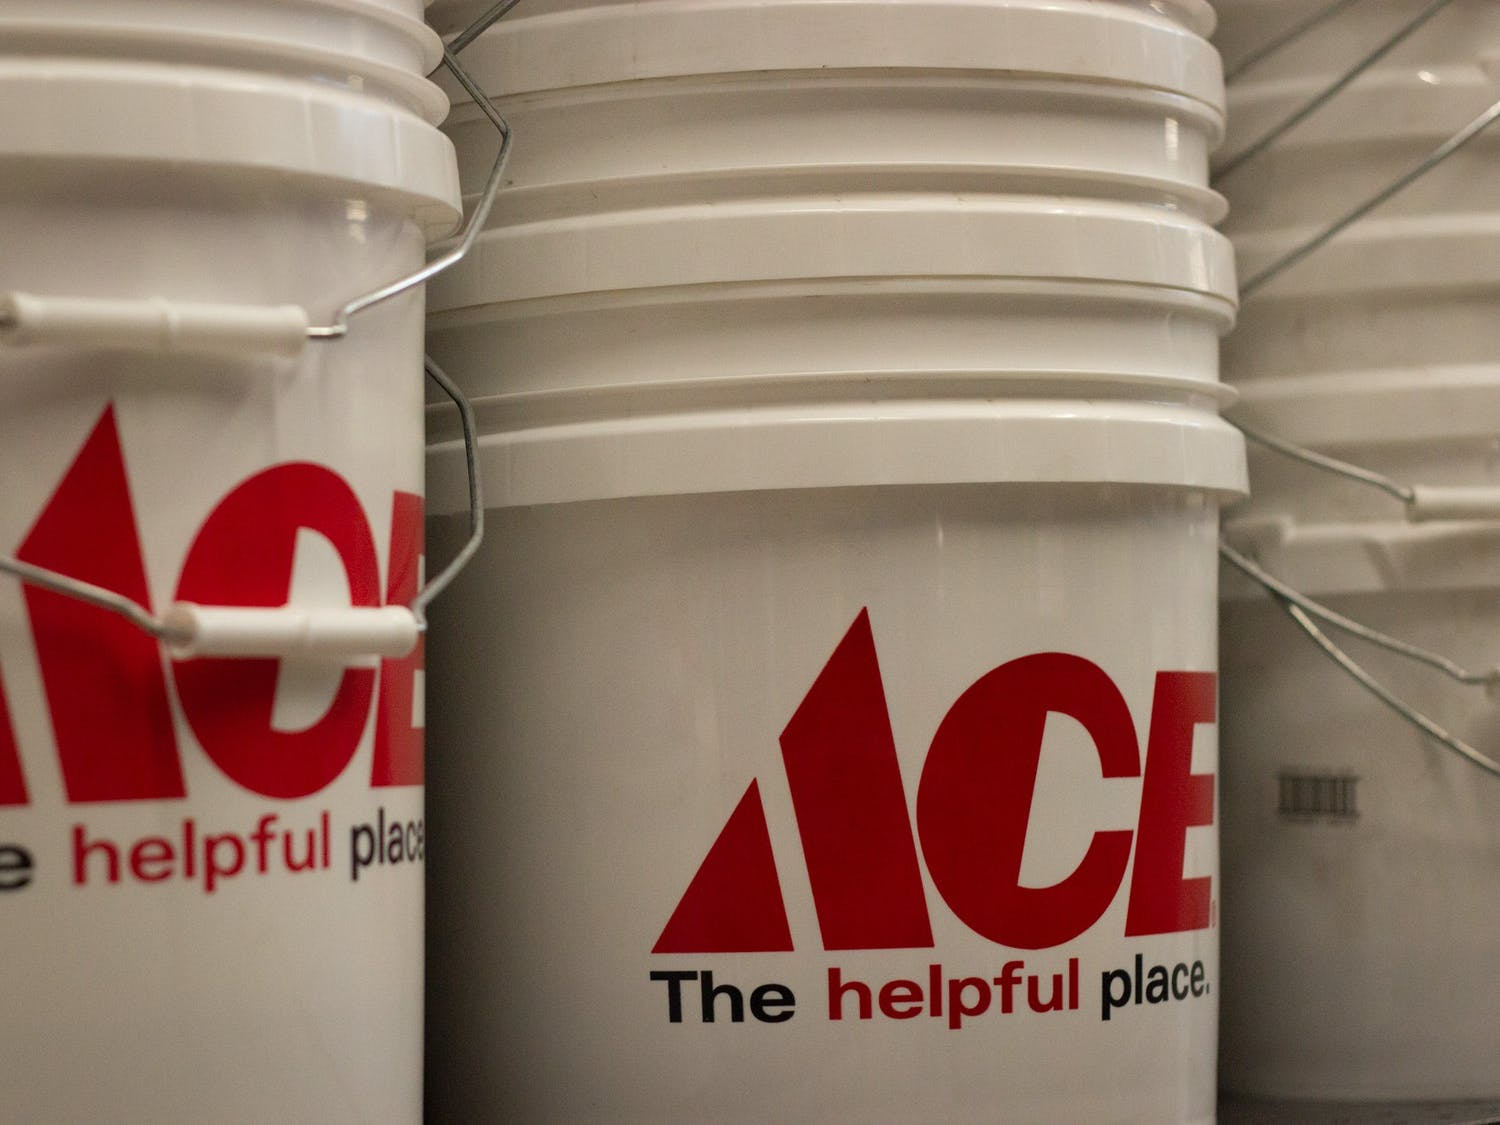 Ace Hardware buckets are pictured at the newly opened store in Chapel Hill, NC on Wednesday, April 7th, 2021.